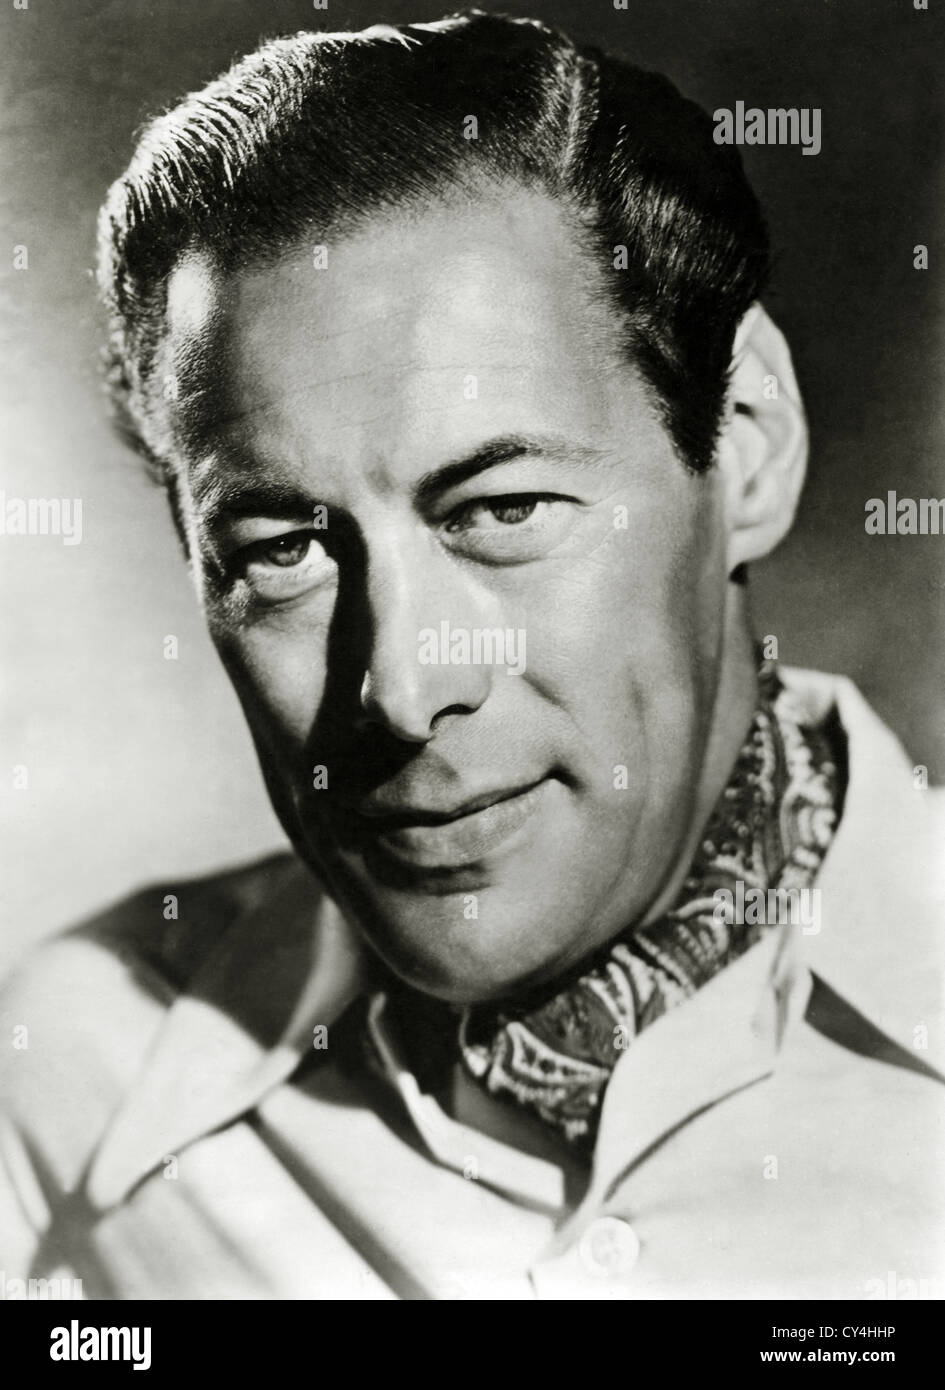 REX HARRISON, SIR (PORTRAIT) RXHS 002 MOVIESTORE COLLECTION LTD - Stock Image